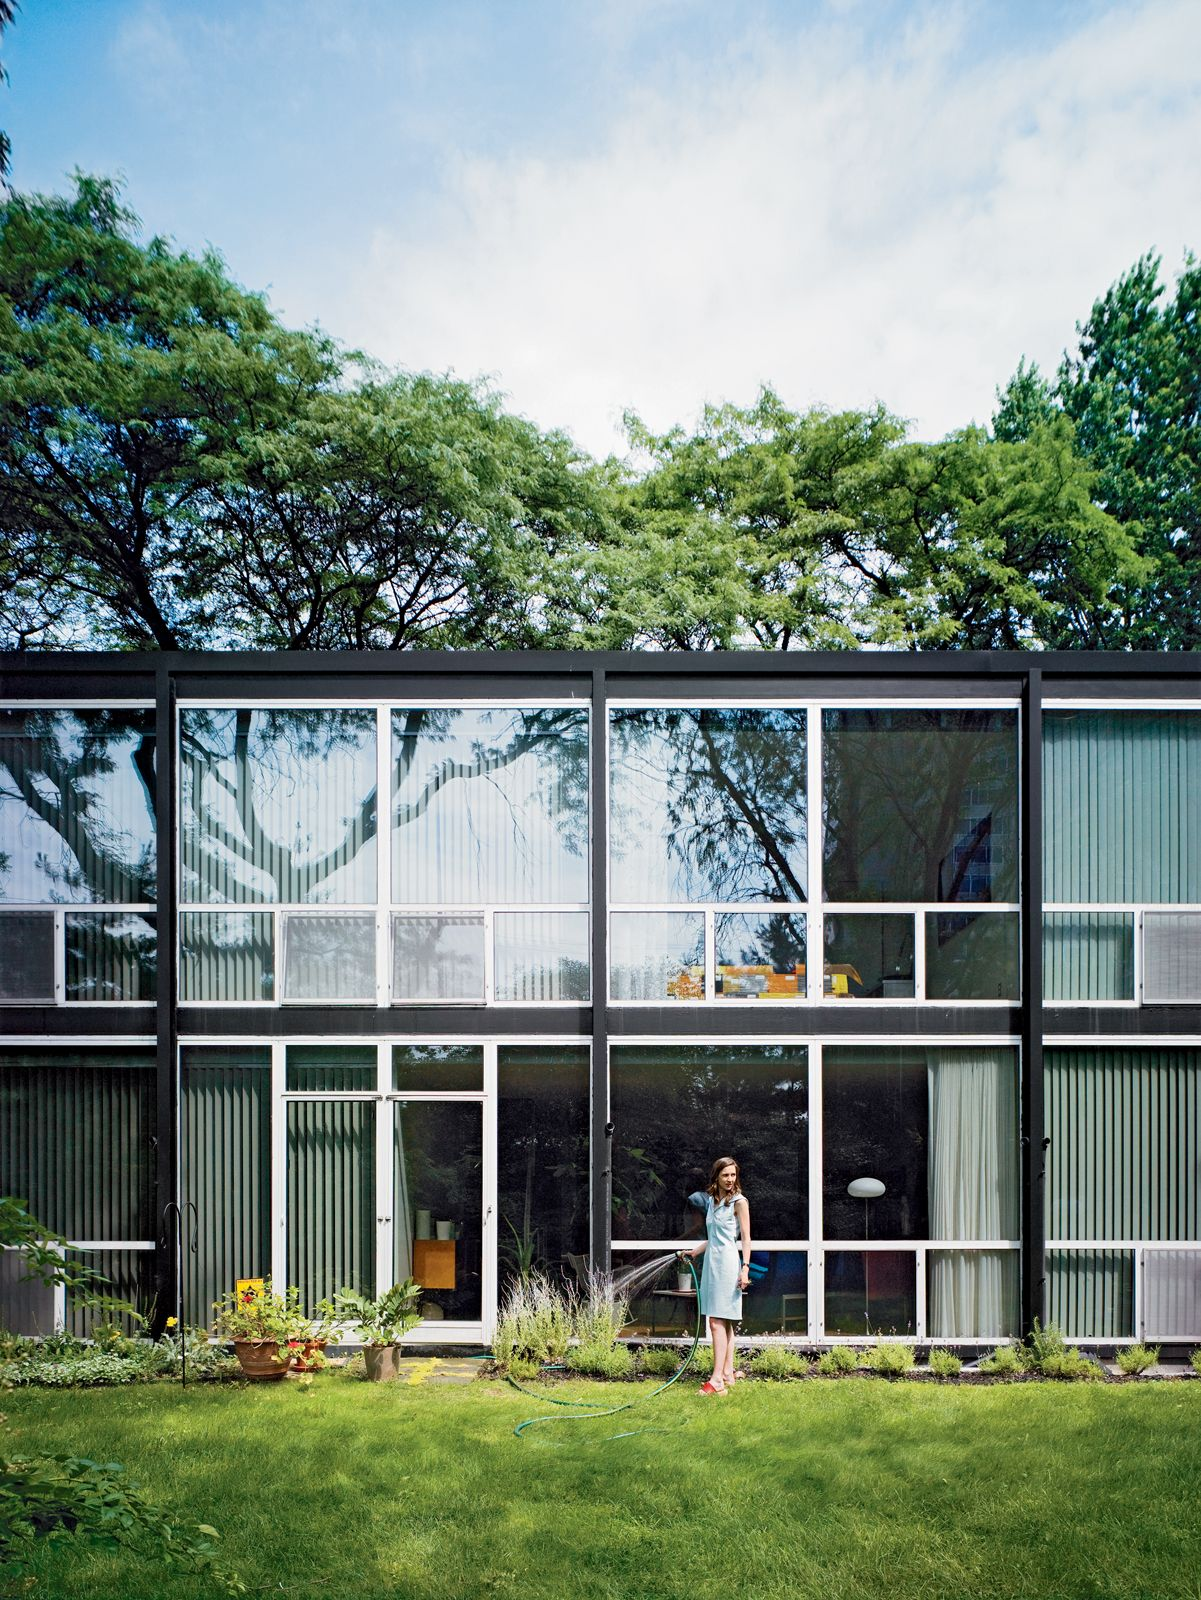 Home To Herman Miller Michigan Has A Long And Storied Modernist Pedigree Here Are Seven Inventive Or Noteworthy Mies Van Der Rohe Van Der Rohe Lafayette Park